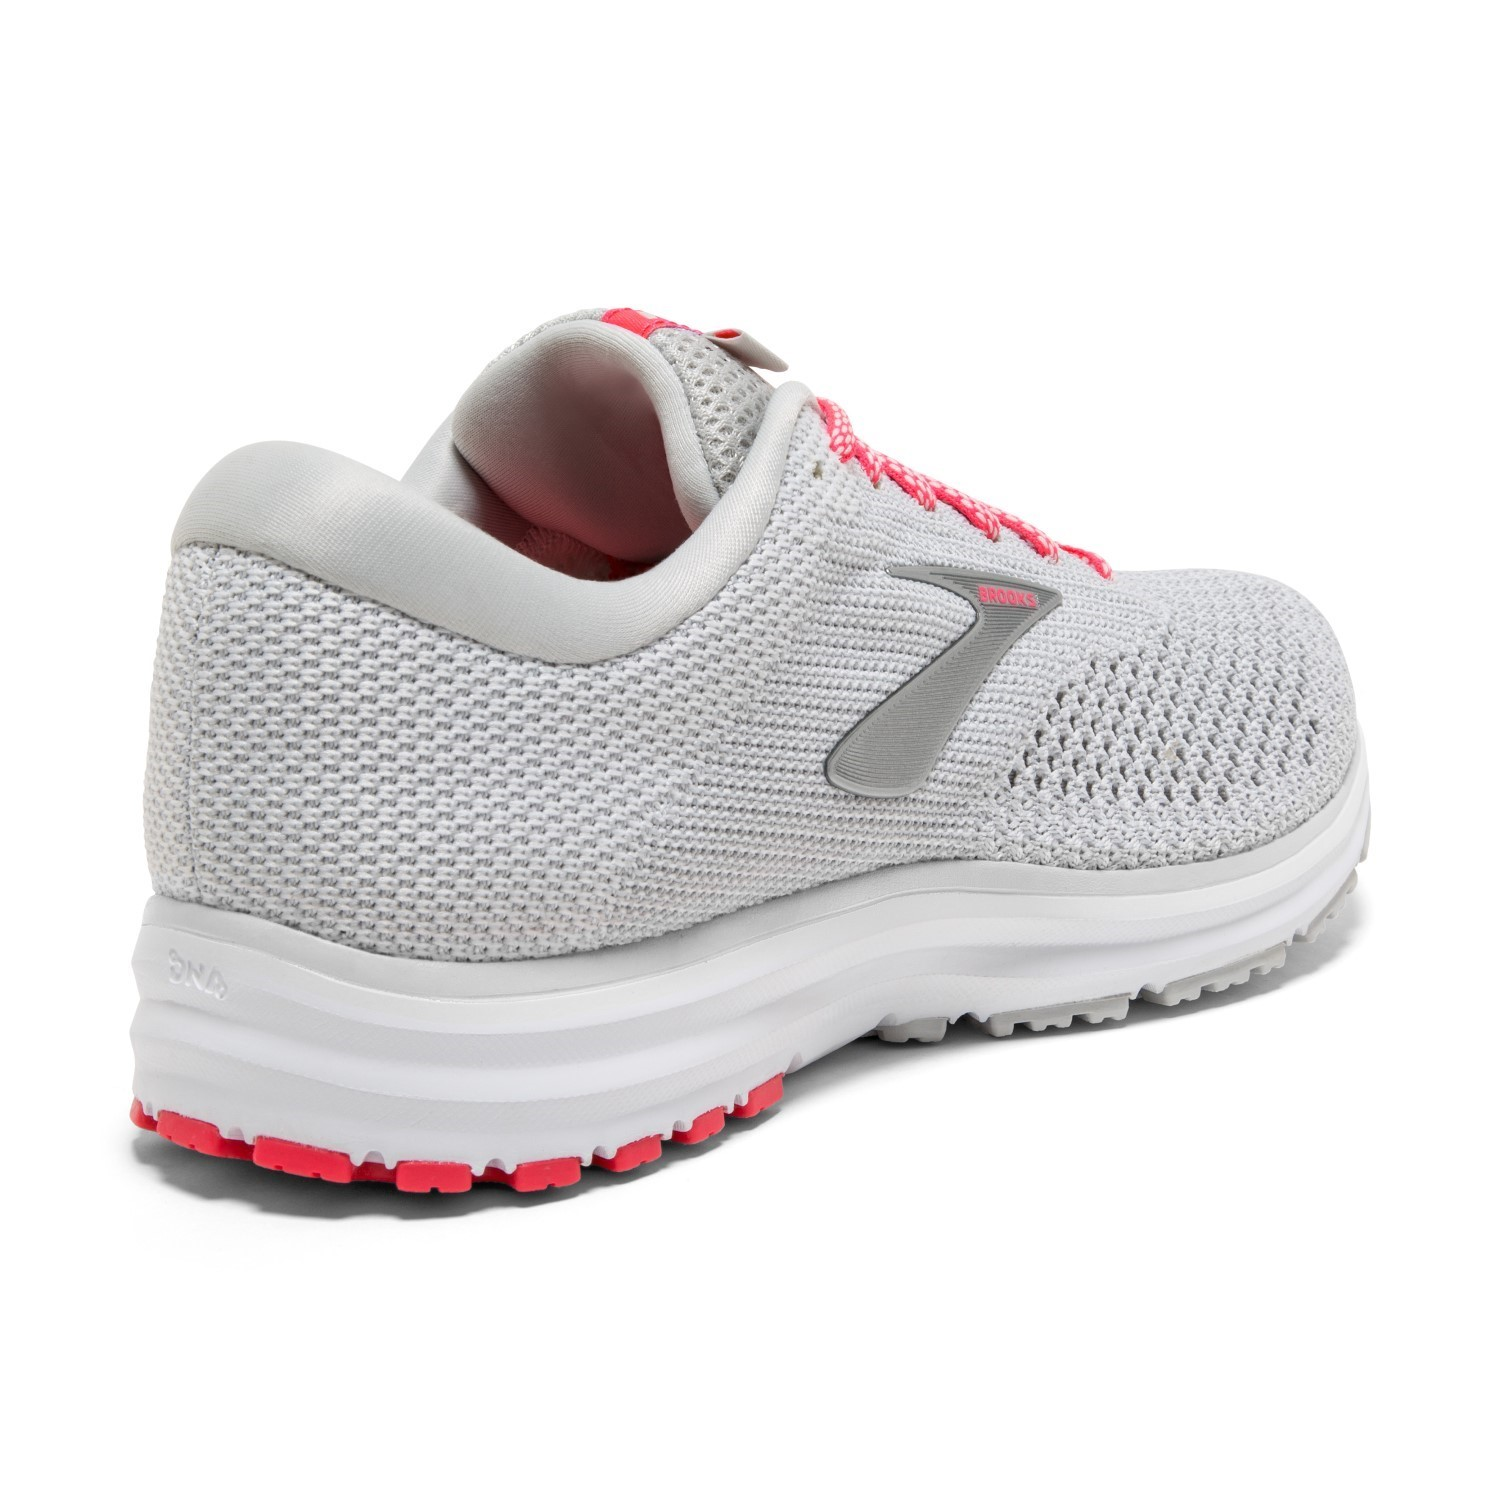 c042e439fc420 Brooks Revel 2 - Womens Running Shoes - Grey White Pink